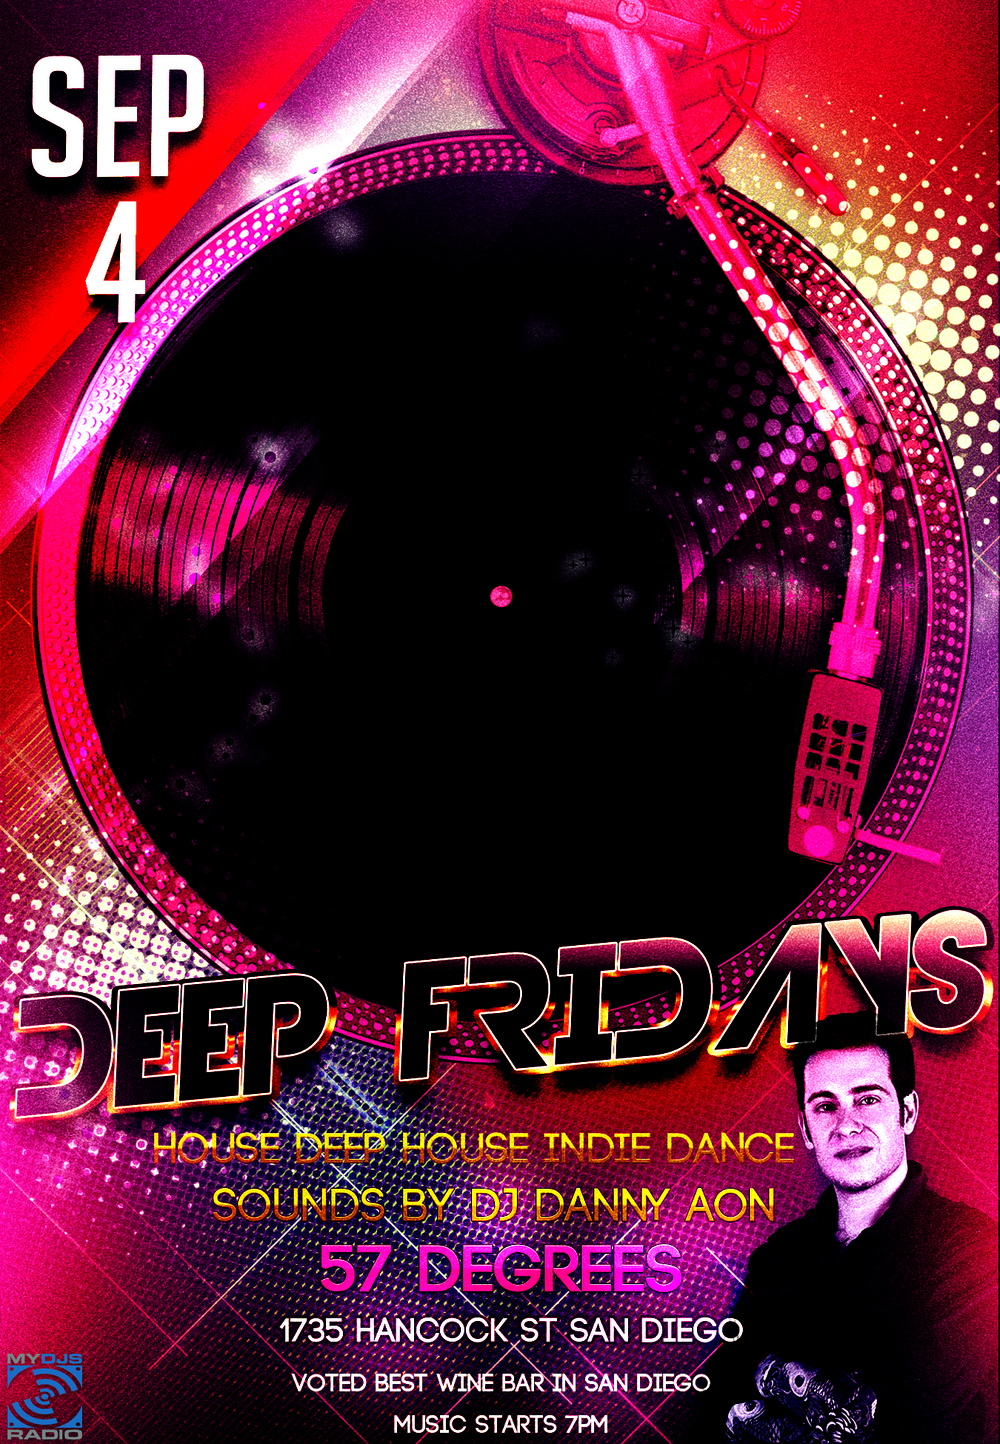 deep house fridays final b - Copy.jpg